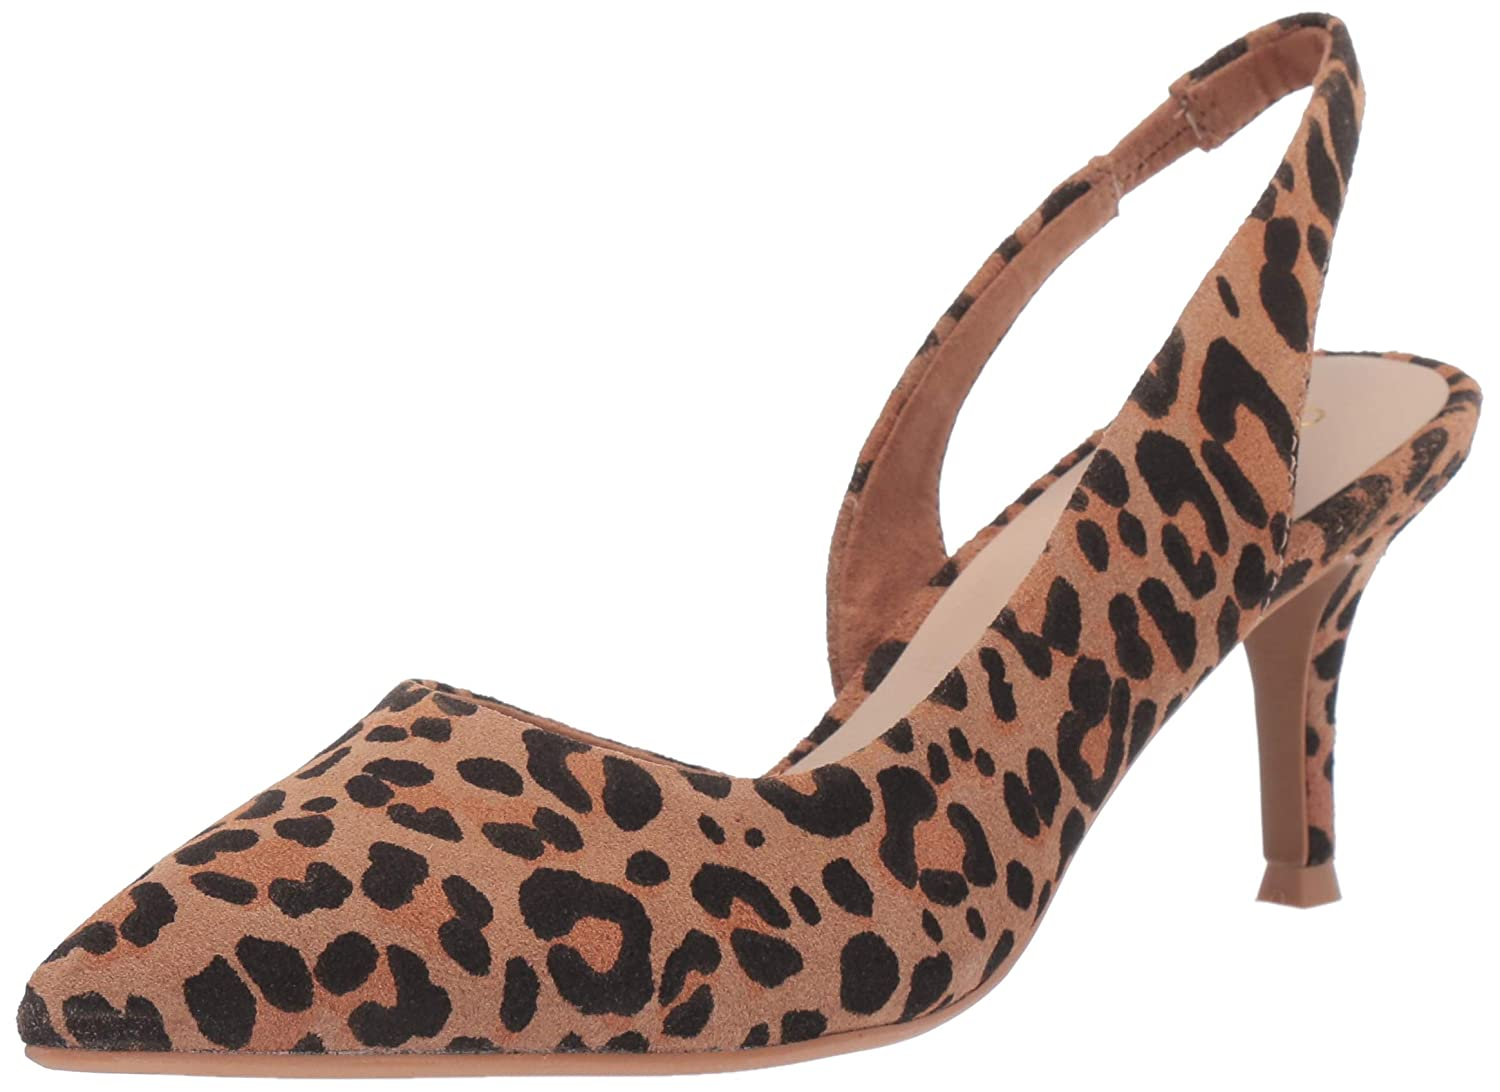 Leopard Seychelles Womens Ornament Heeled Sandal